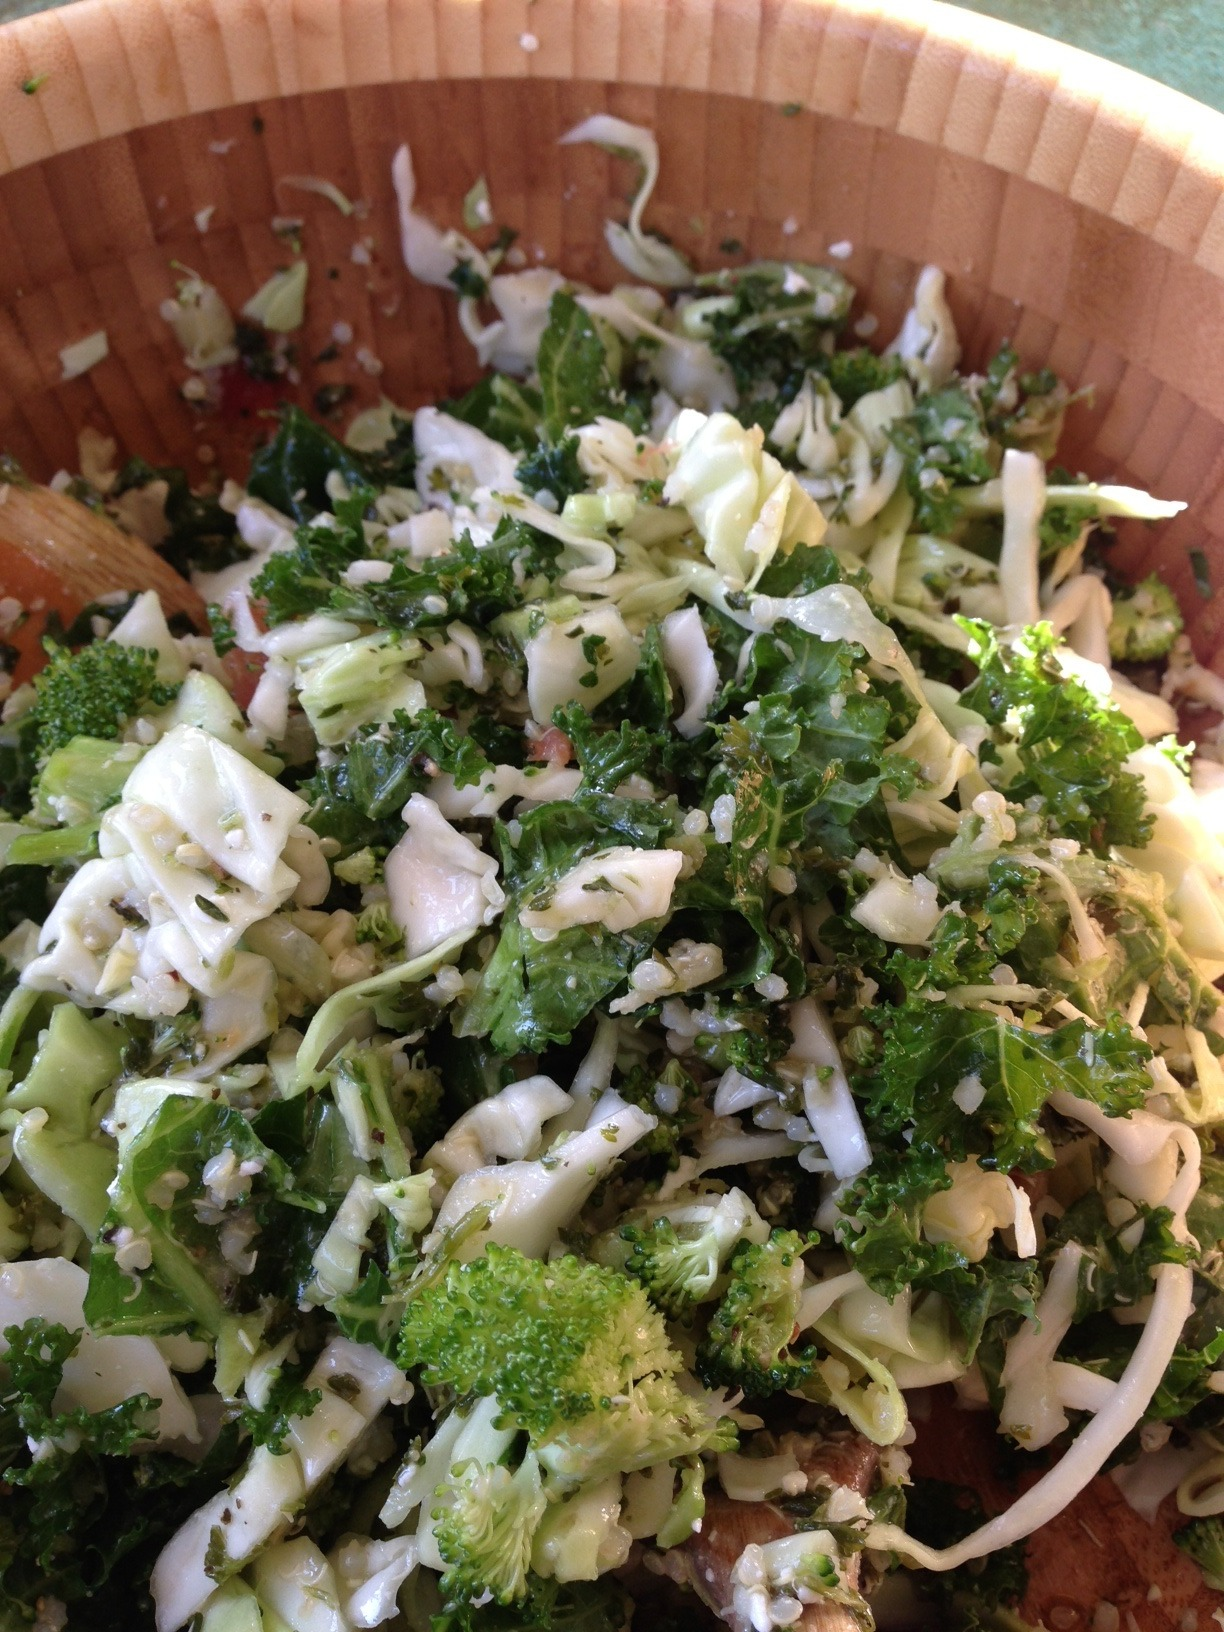 My friend Lisa sent me this picture last night. I was so happy to receive this and to know that my alkaline lifestyle is rubbing off on my fiends. So I thought I would post it and share this delicious salad with you. Eating alkaline does not have to be boring. Not only is this salad beautiful to look at, it's a crowd pleaser with great bursts of flavor in every bite.     Don't worry about the amount of ingredients, just use what you have to make a nice combination.   I have given you an idea of what to go on.     Serves 4     About 2 cups Kale, chopped  About 2 cups Cabbage, chopped  1 cup Broccoli florets    1 cup of cooked Quinoa  A handful of cherry Tomatoes, sliced in half  ½ cup Parsley, roughly chopped  ½ green onion, diced  A few mint leaves  Dressing:  3 Tbsp. olive oil   1 Tbsp. fresh lemon juice  ½ tsp. minced garlic or ¼ tsp. minced garlic  Salt and pepper to taste